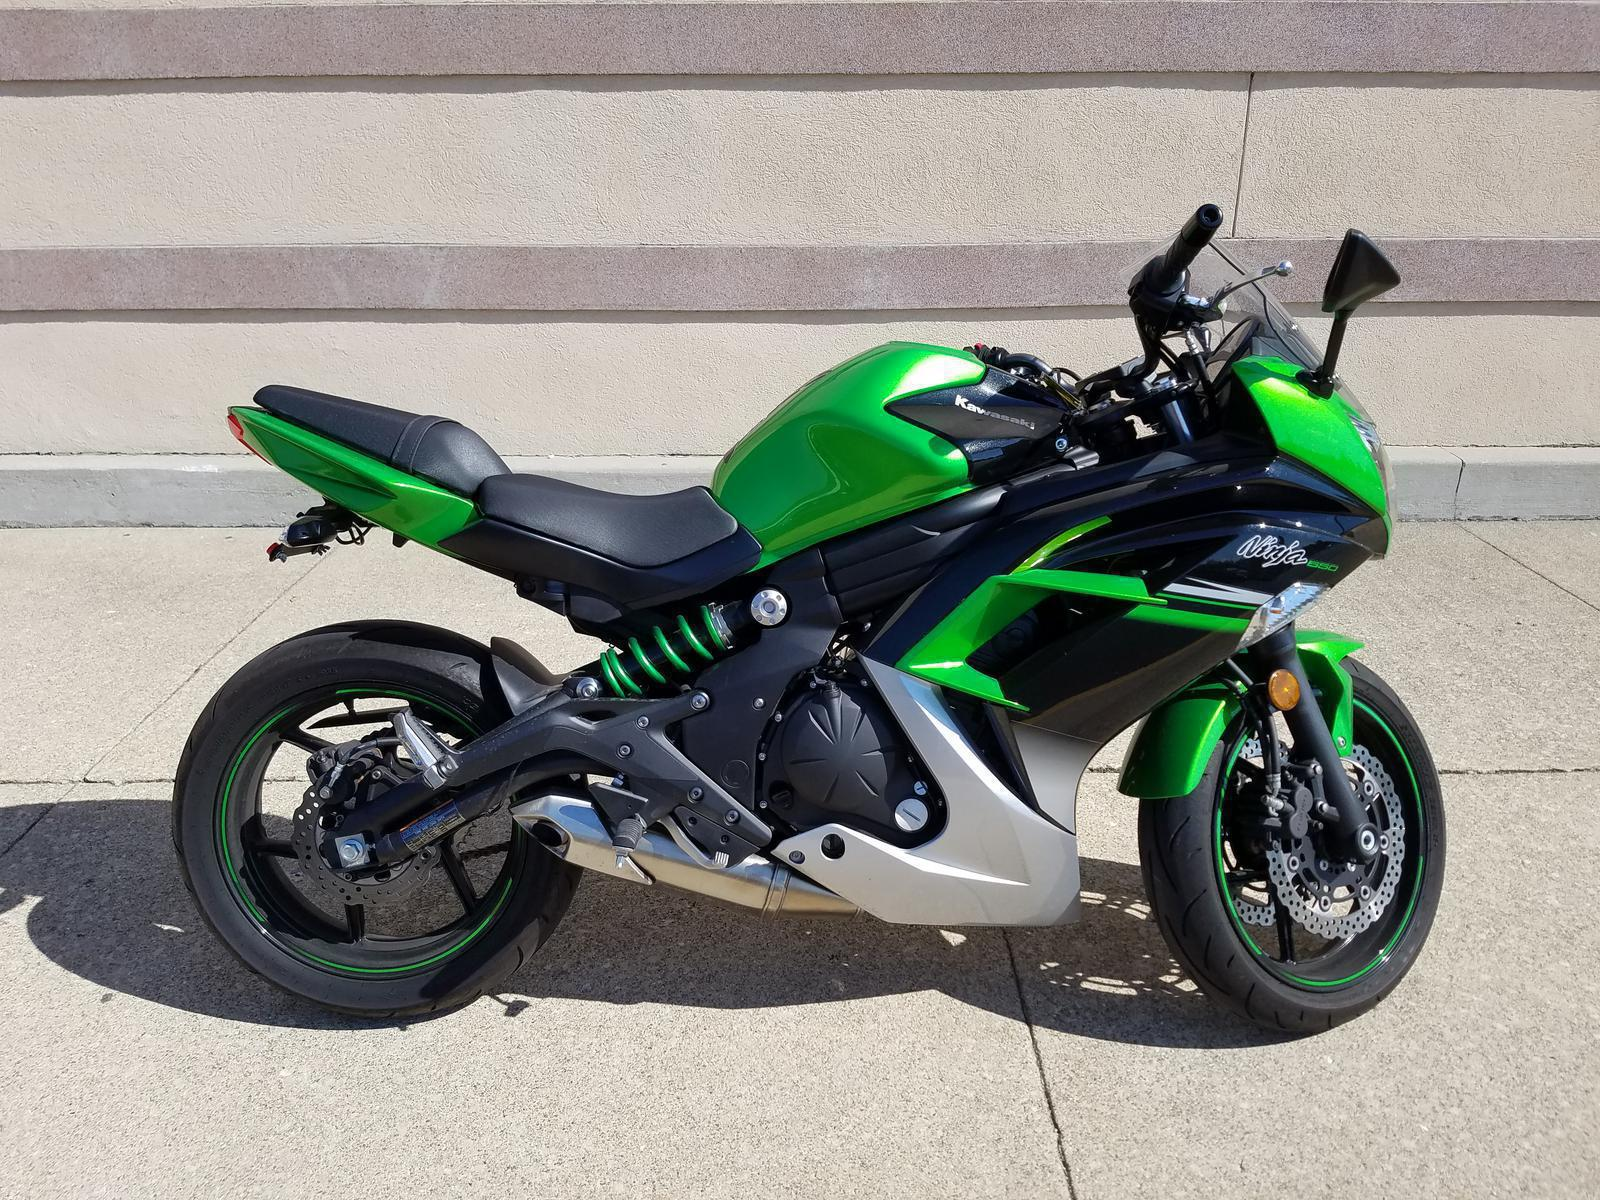 2016 Kawasaki Ninja 650 Abs For Sale In Westerville Oh